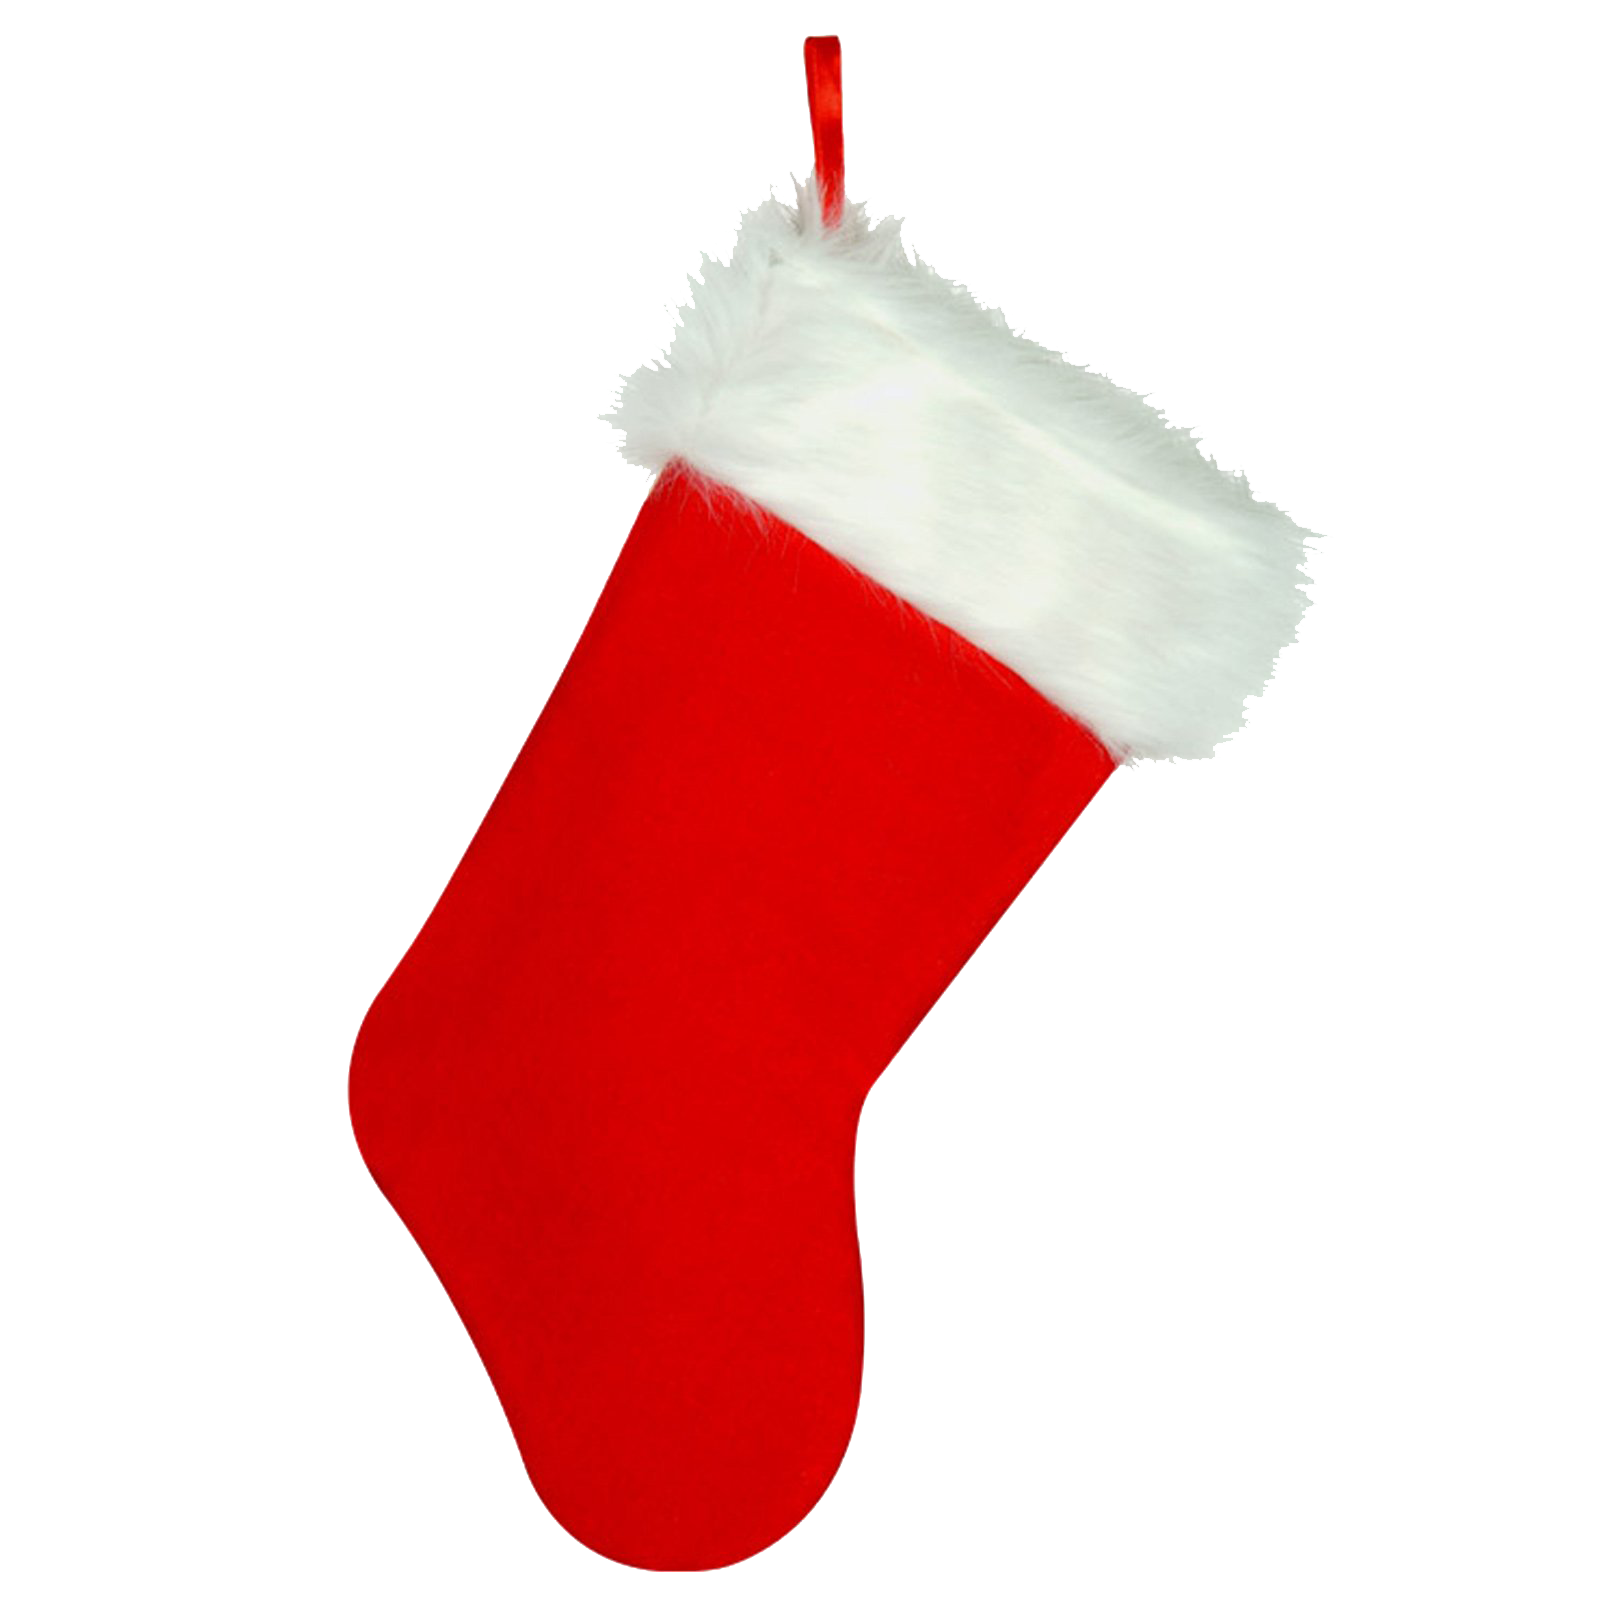 Christmas stocking png. Transparent image mart